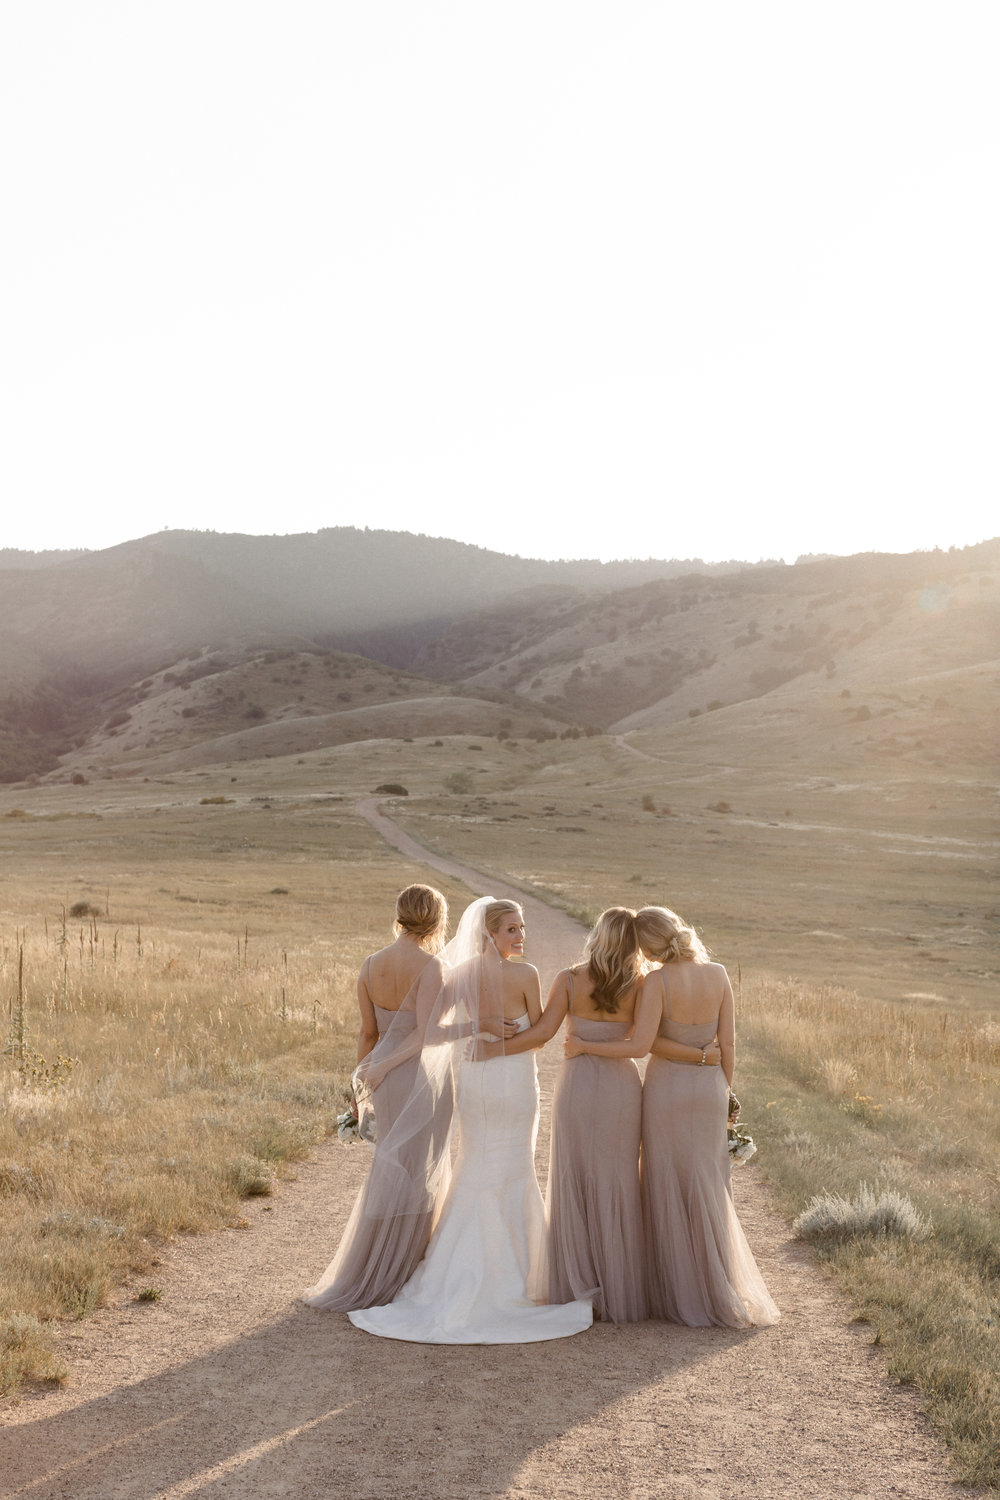 Hailley+Howard_Colorado+Wedding_The+Manor+House-422.jpg